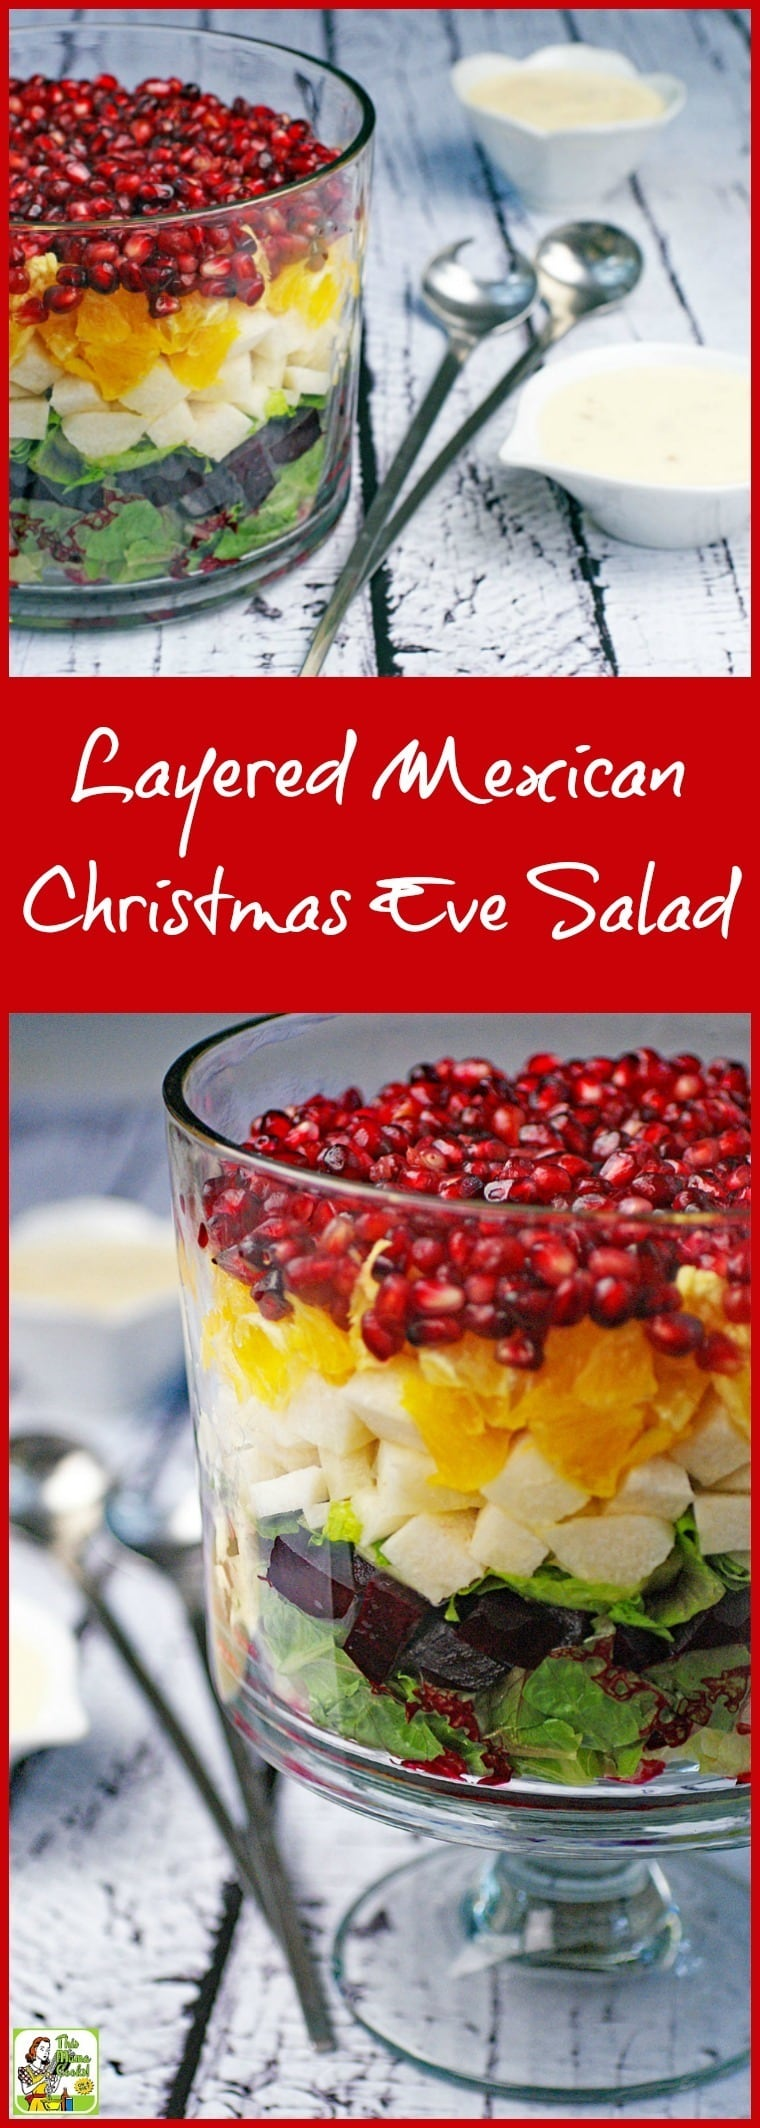 Make something different for the holidays or any time of the year! Learn how to make a Layered Mexican Christmas Eve Salad in a trifle bowl. Click to get this traditional and easy Christmas Eve dinner salad recipe. Super easy to make, very healthy, and so festive looking!  #Christmas #salad #triflebowl #Mexican #ChristmasEve #healthy #glutenfree #beets #pomagranate #Mexicanfood